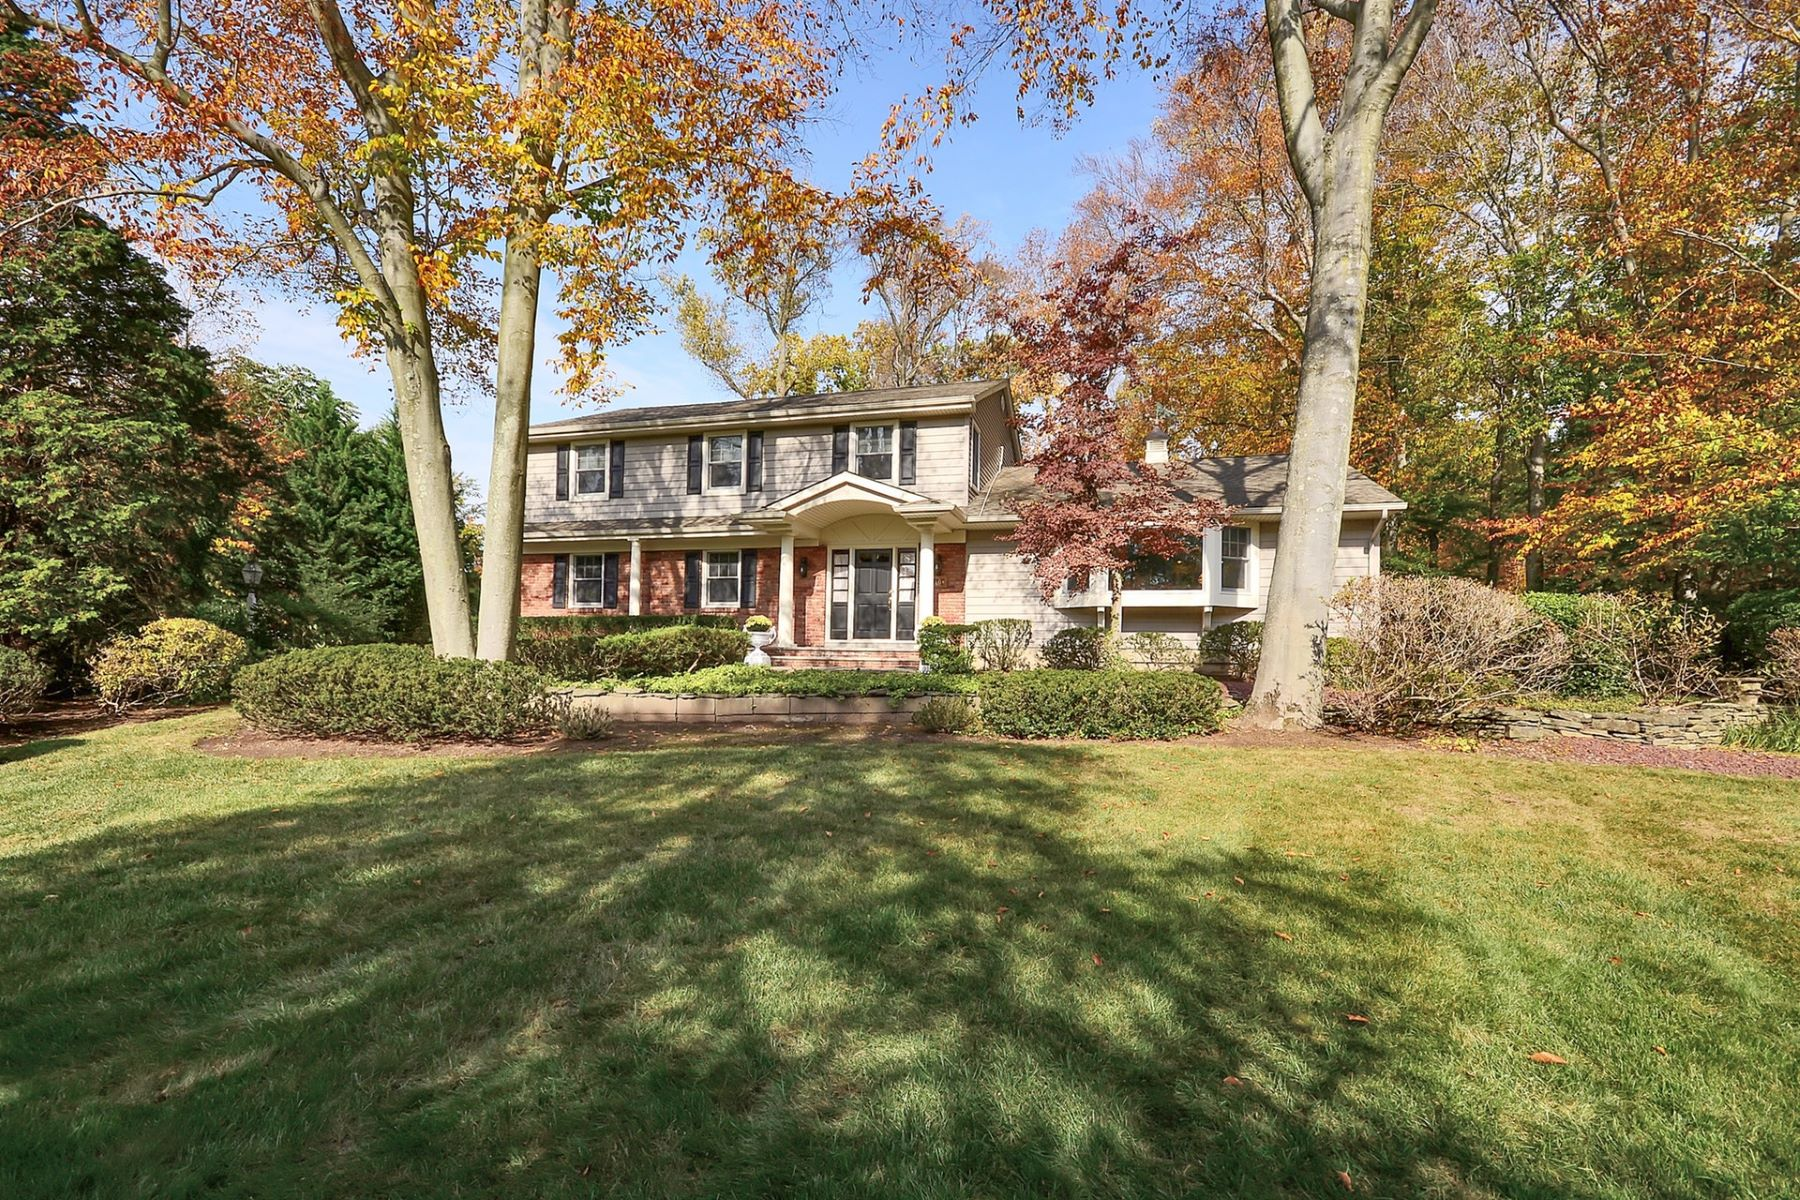 Single Family Home for Sale at Elegantly Renovated Woodcliff Lake Home 16 Gary Ct, Woodcliff Lake, New Jersey 07677 United States